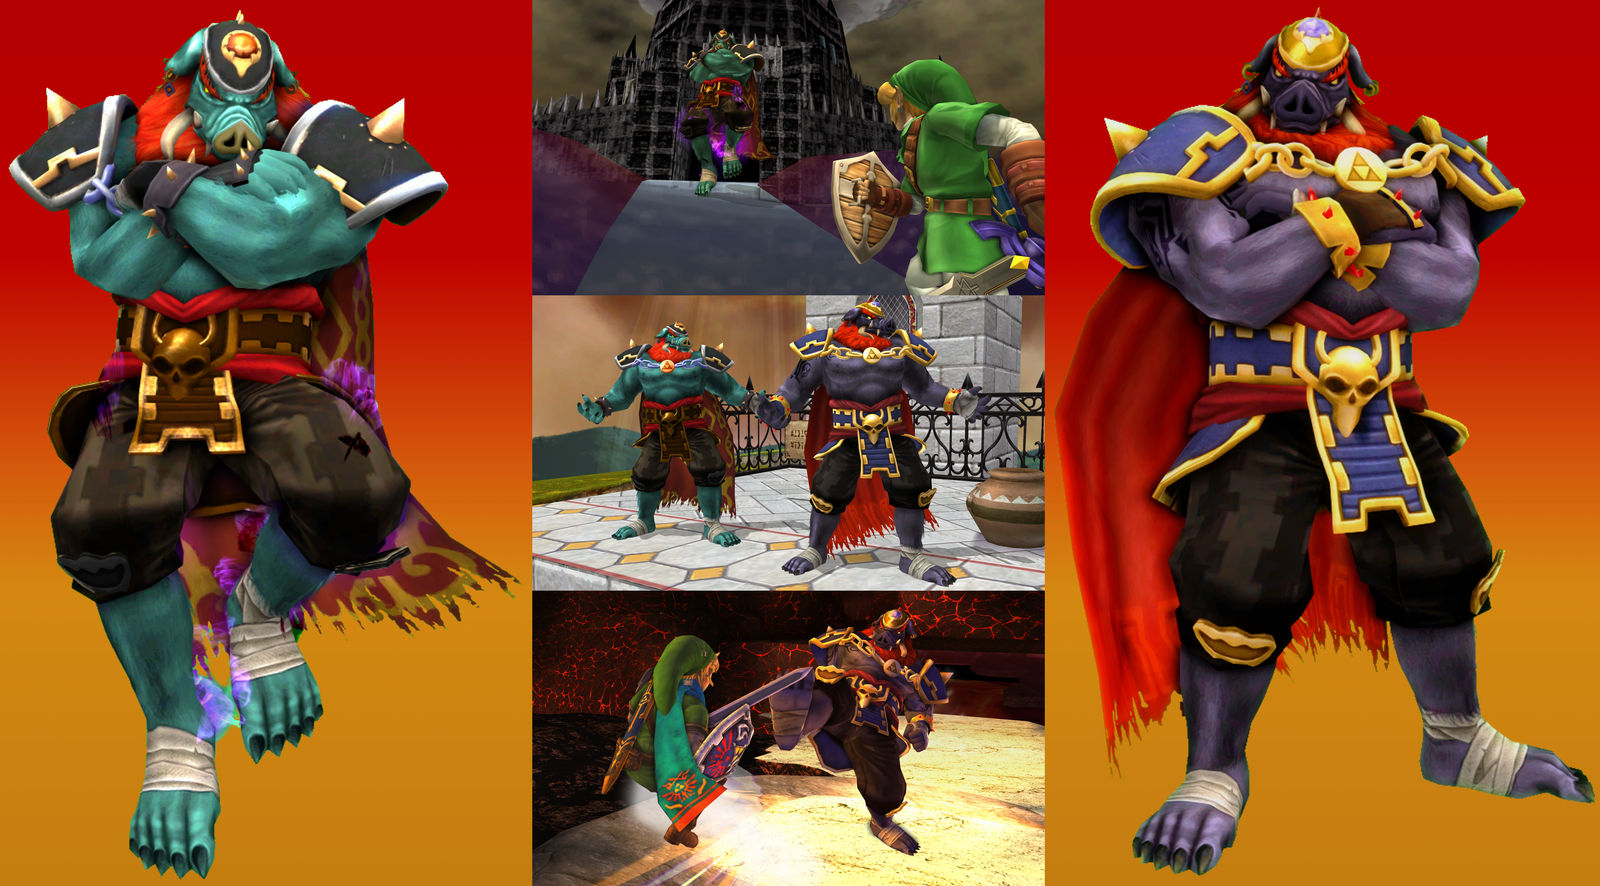 Brawl/Project M Mods - Pig Ganon Recolors by Ch40sKnight on